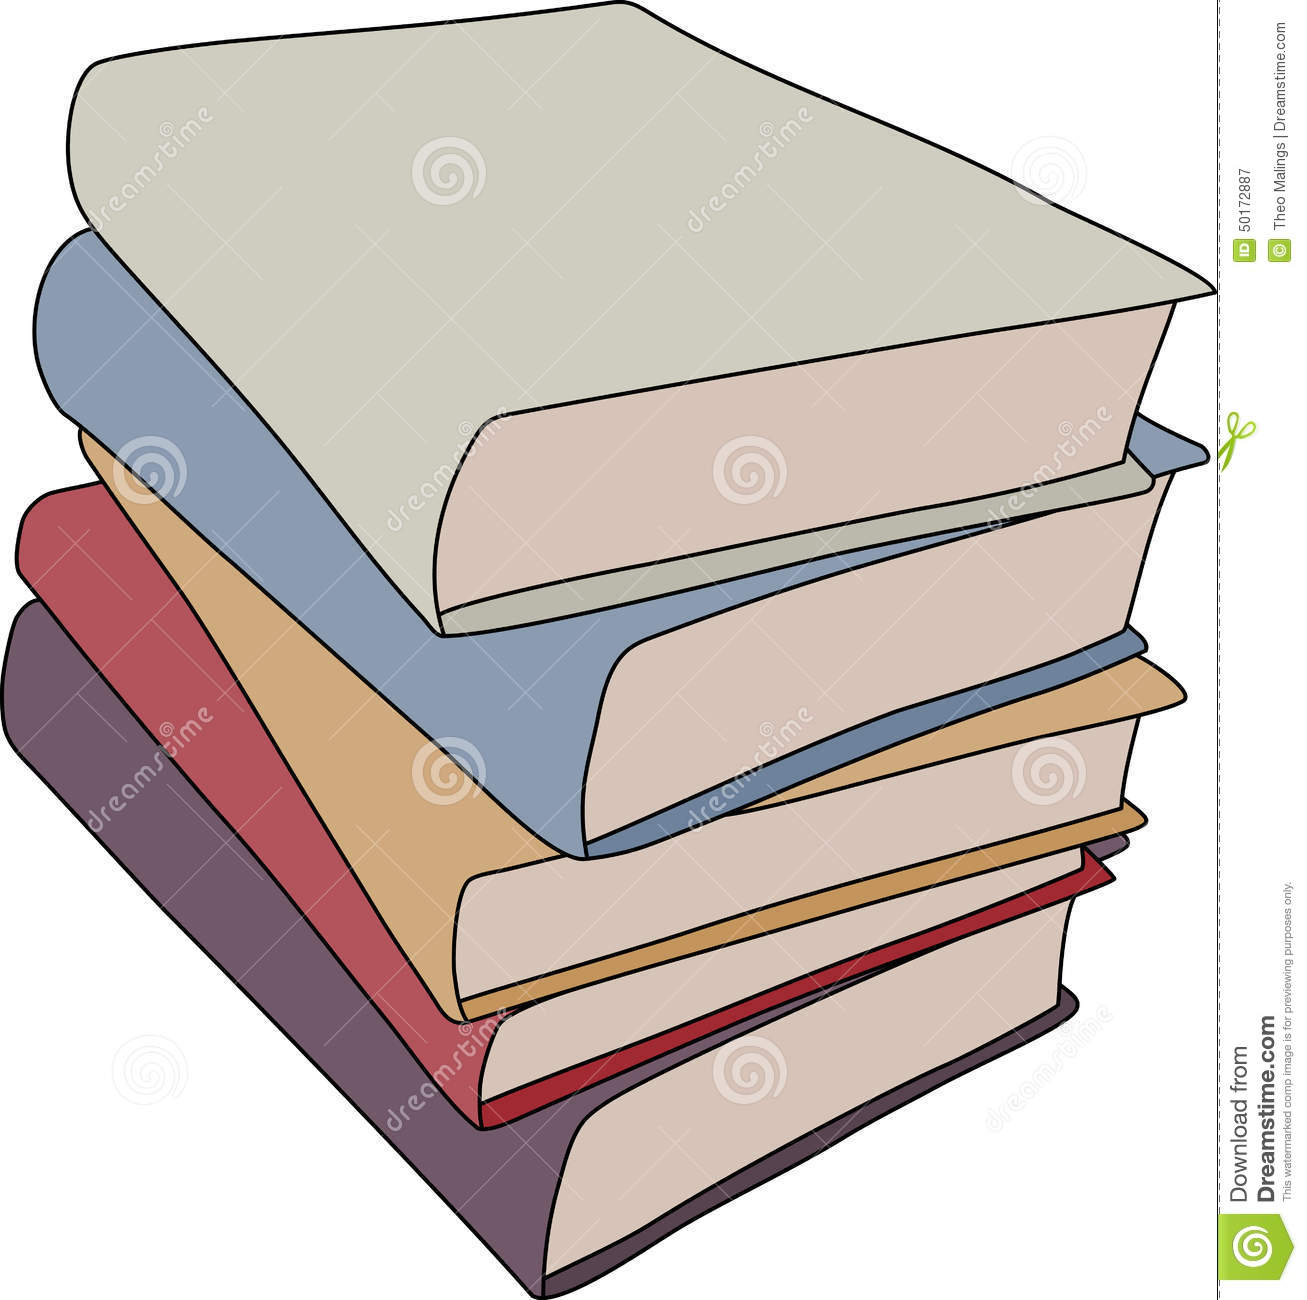 Livres De Bande Dessinee Illustration Stock Illustration Du